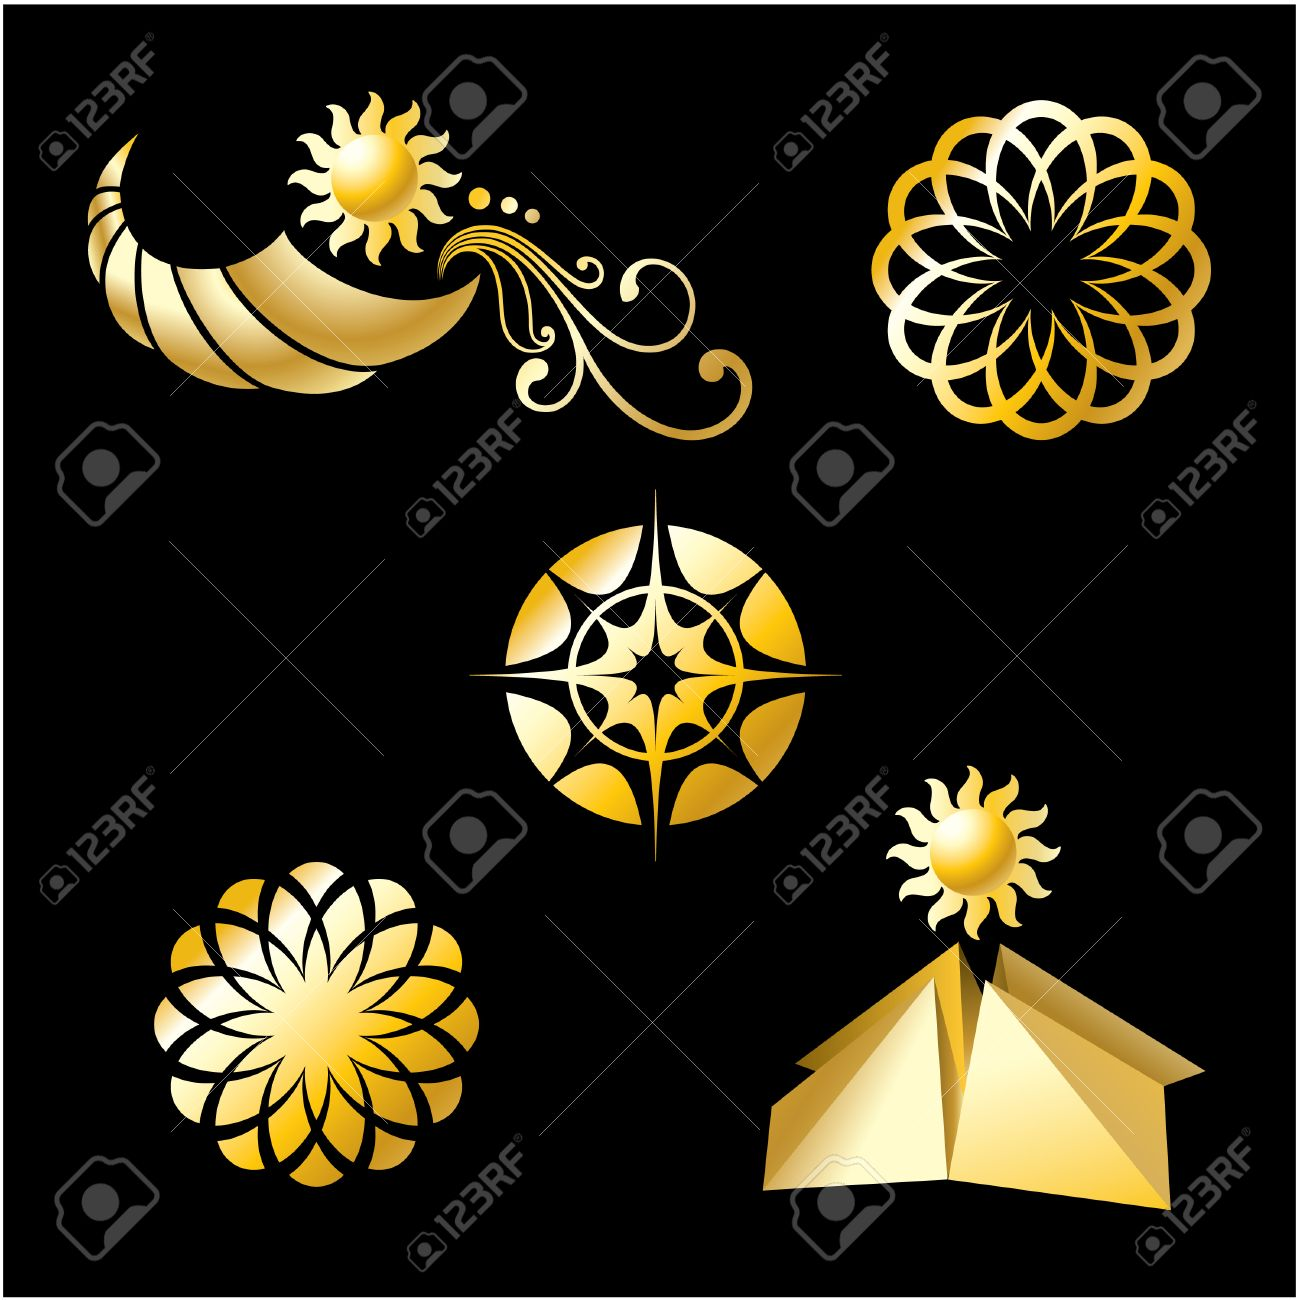 Set of corporate gold branding templates. Just place your own brand name. Stock Vector - 8977575